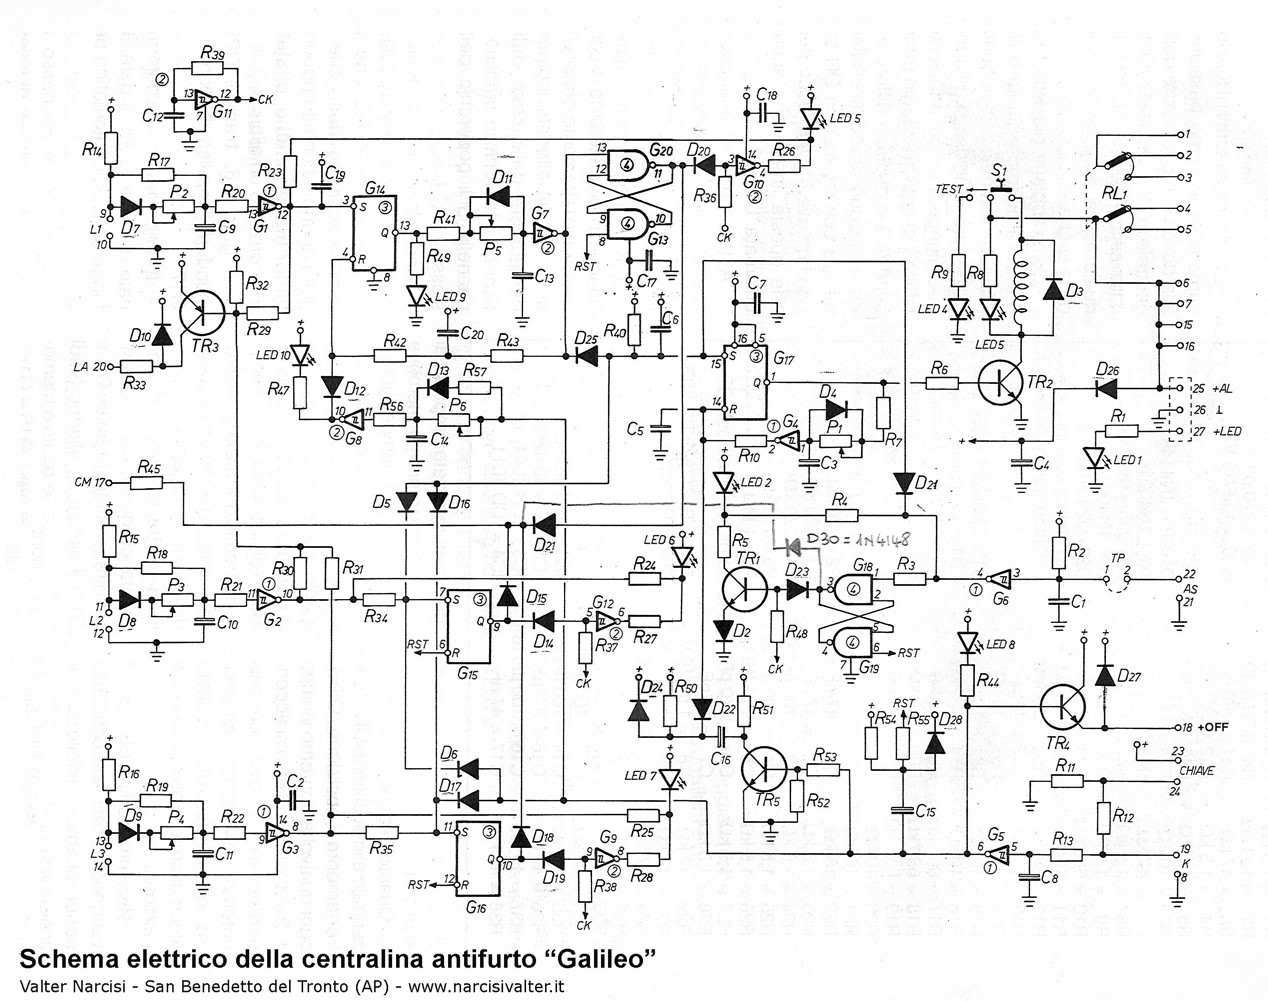 alarm circuit diagram use case vending machine burglar pdf